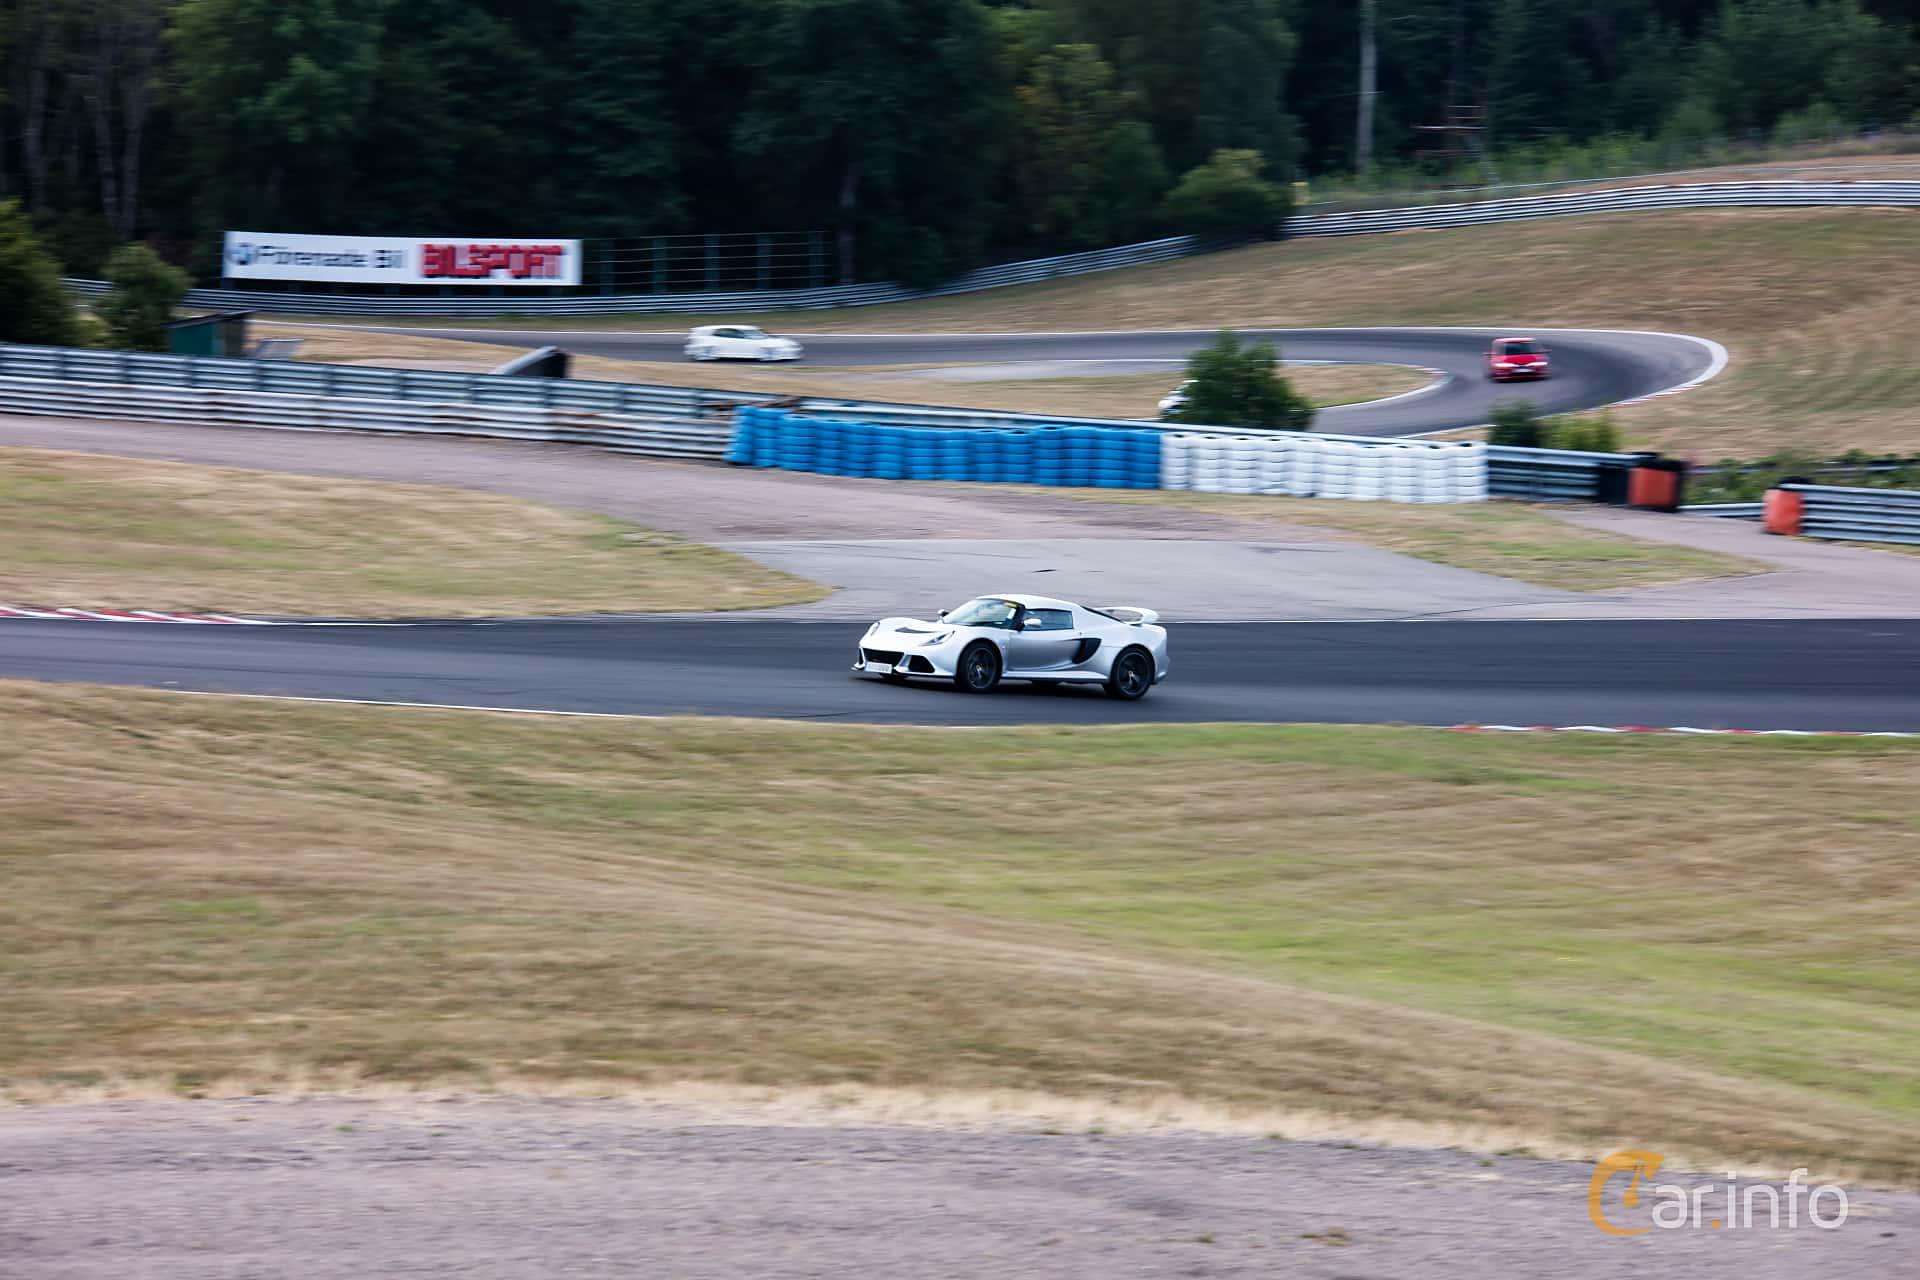 Lotus Exige S 3.5 V6 VVT-i Manual, 350hp, 2014 at JapTuning Trackday 2018 Knutstorp